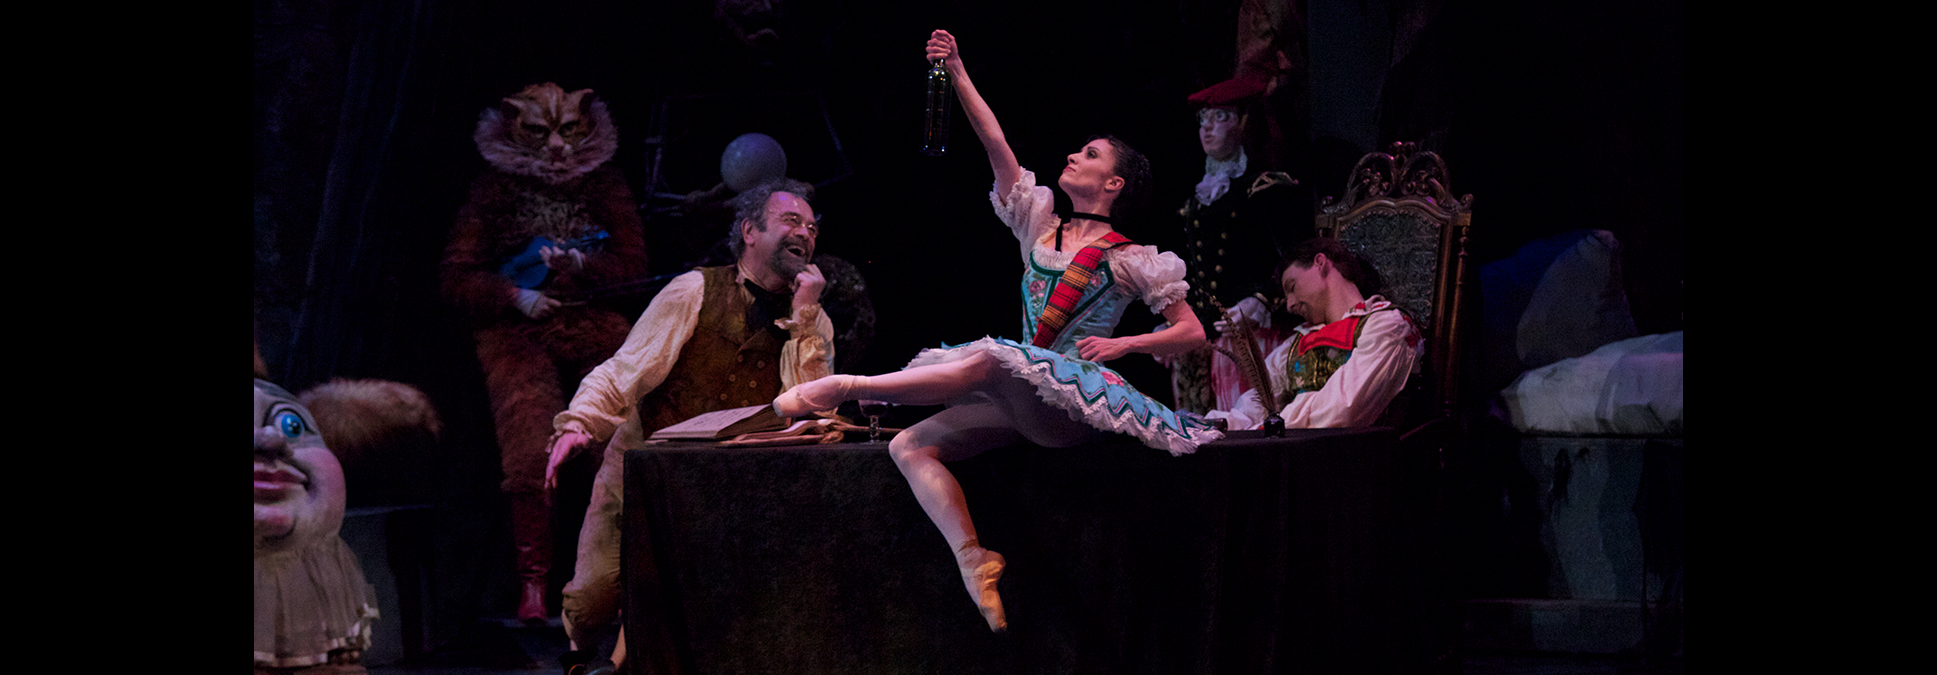 Milwaukee Ballet Coppelia at the Marcus Center